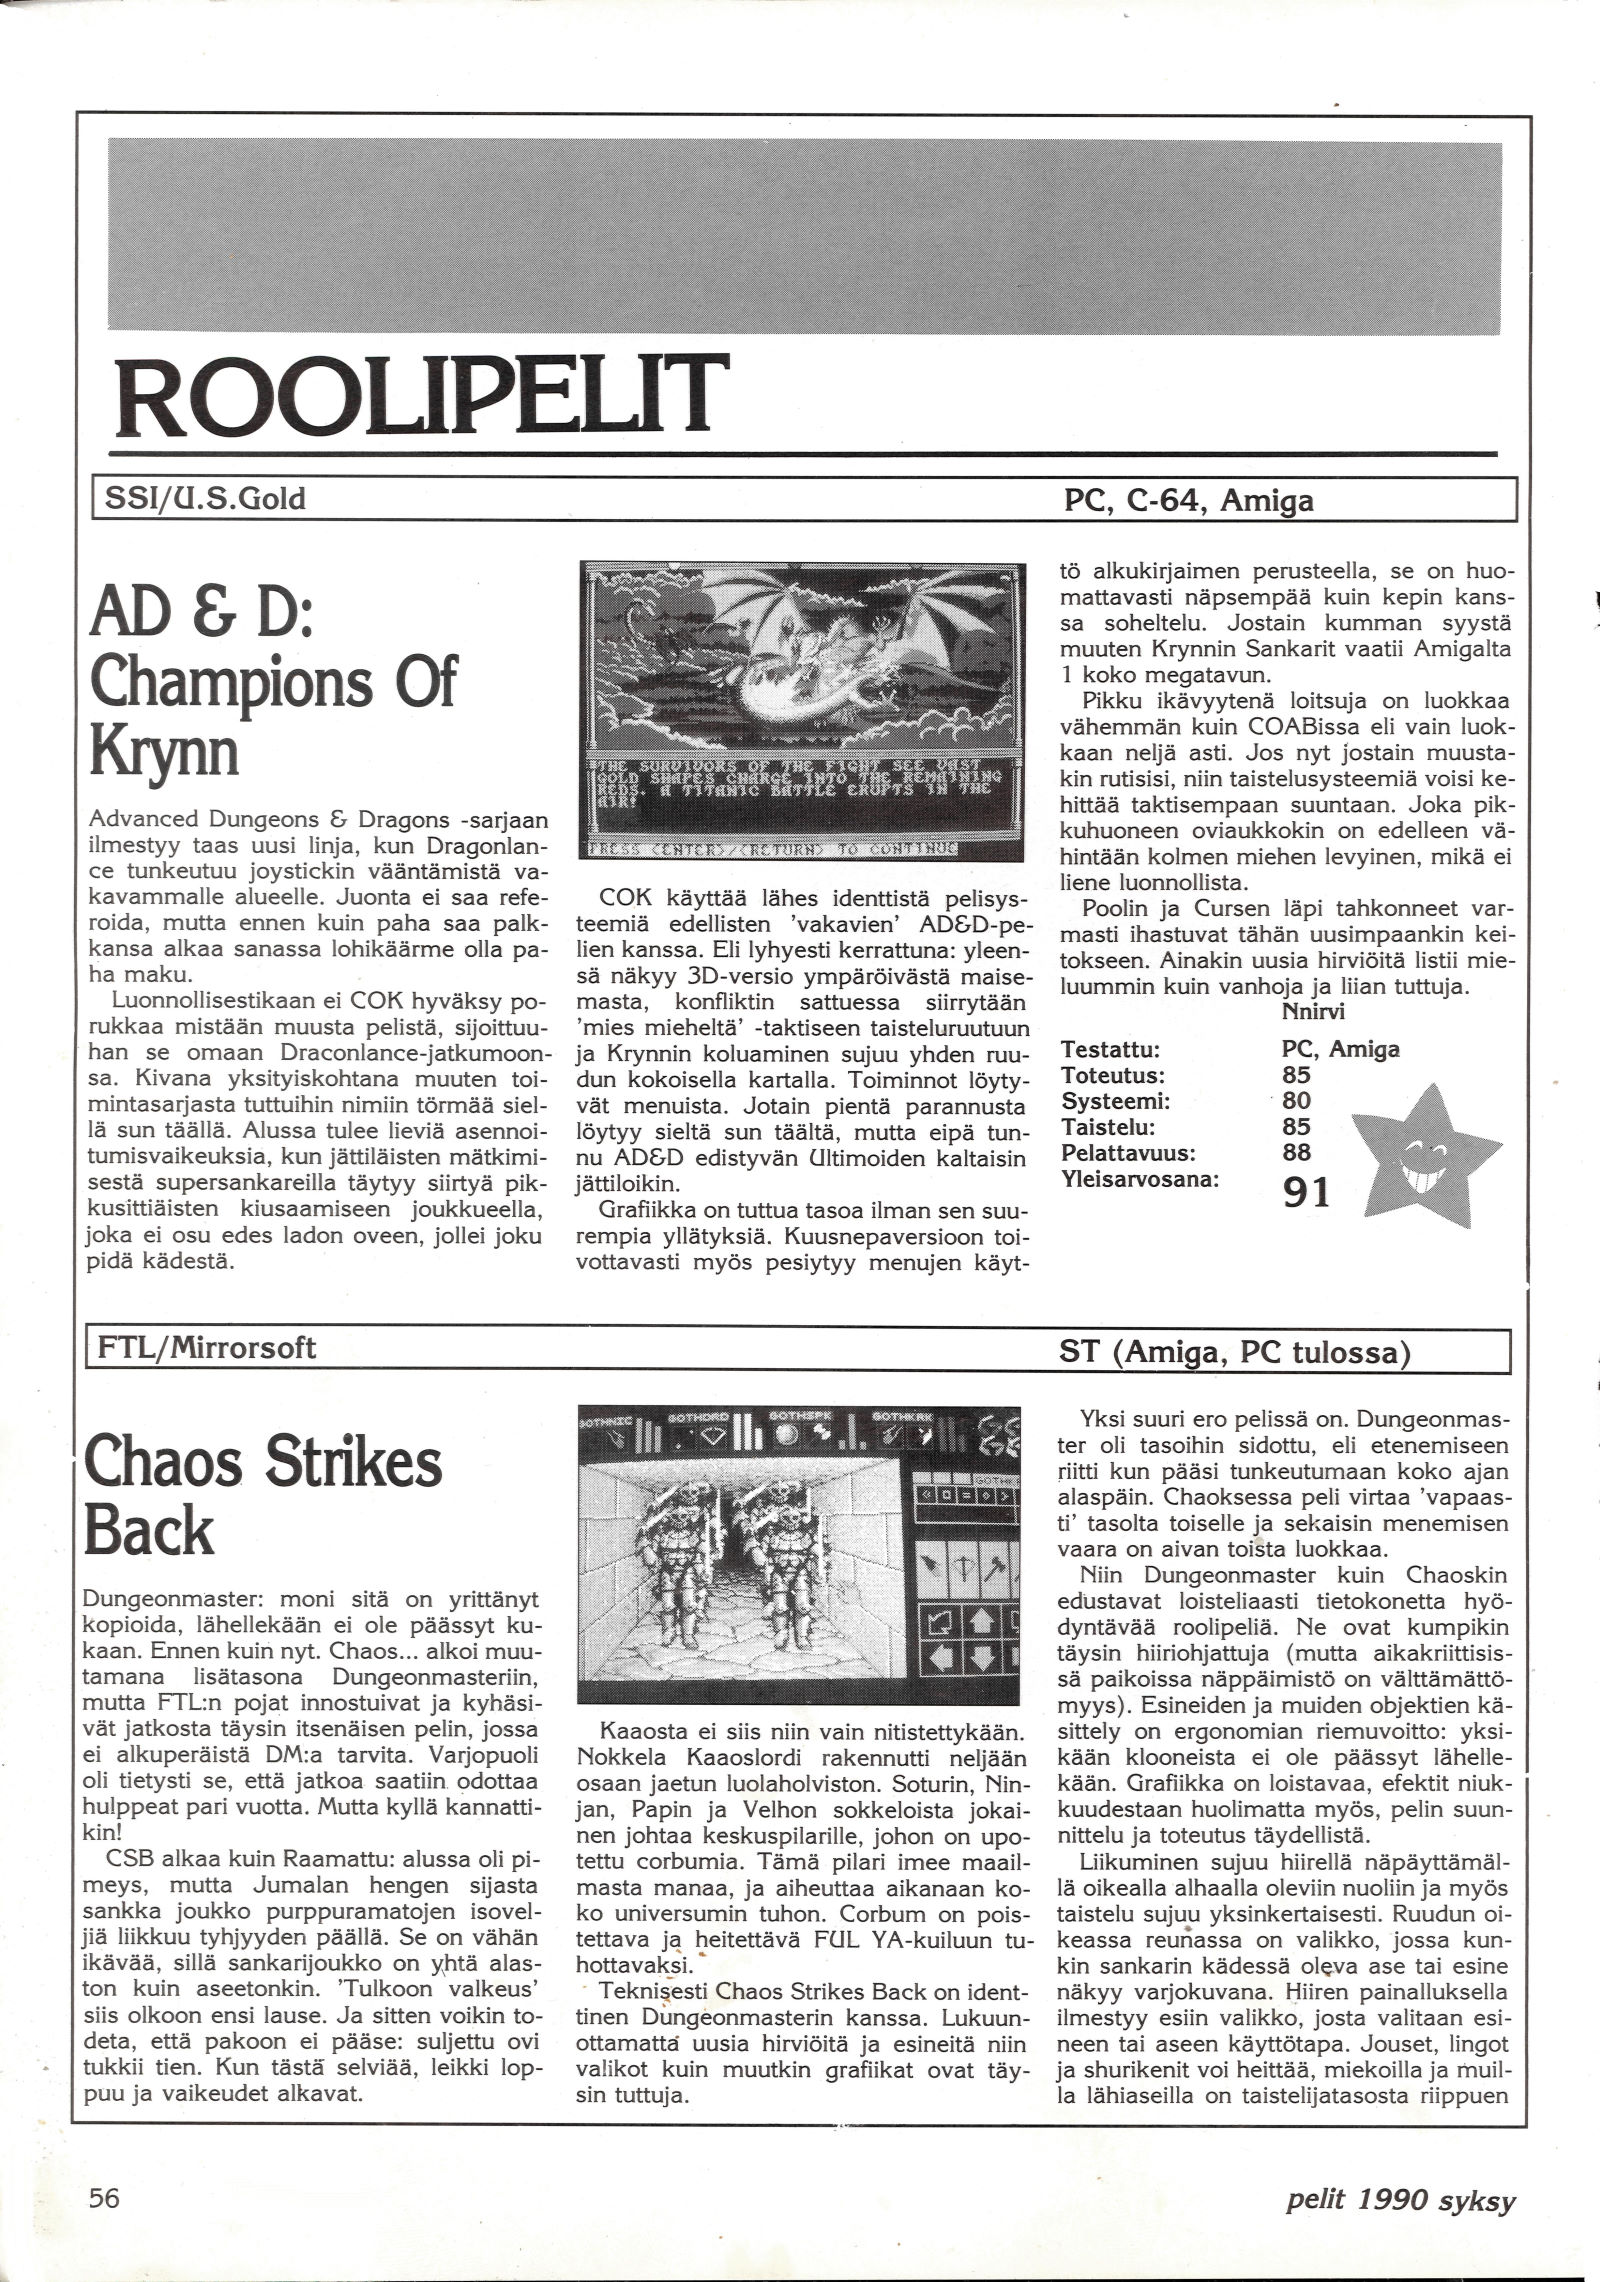 Chaos Strikes Back for Atari ST Review published in Finnish magazine 'Pelit', Issue #6 Autumn 1990, Page 56